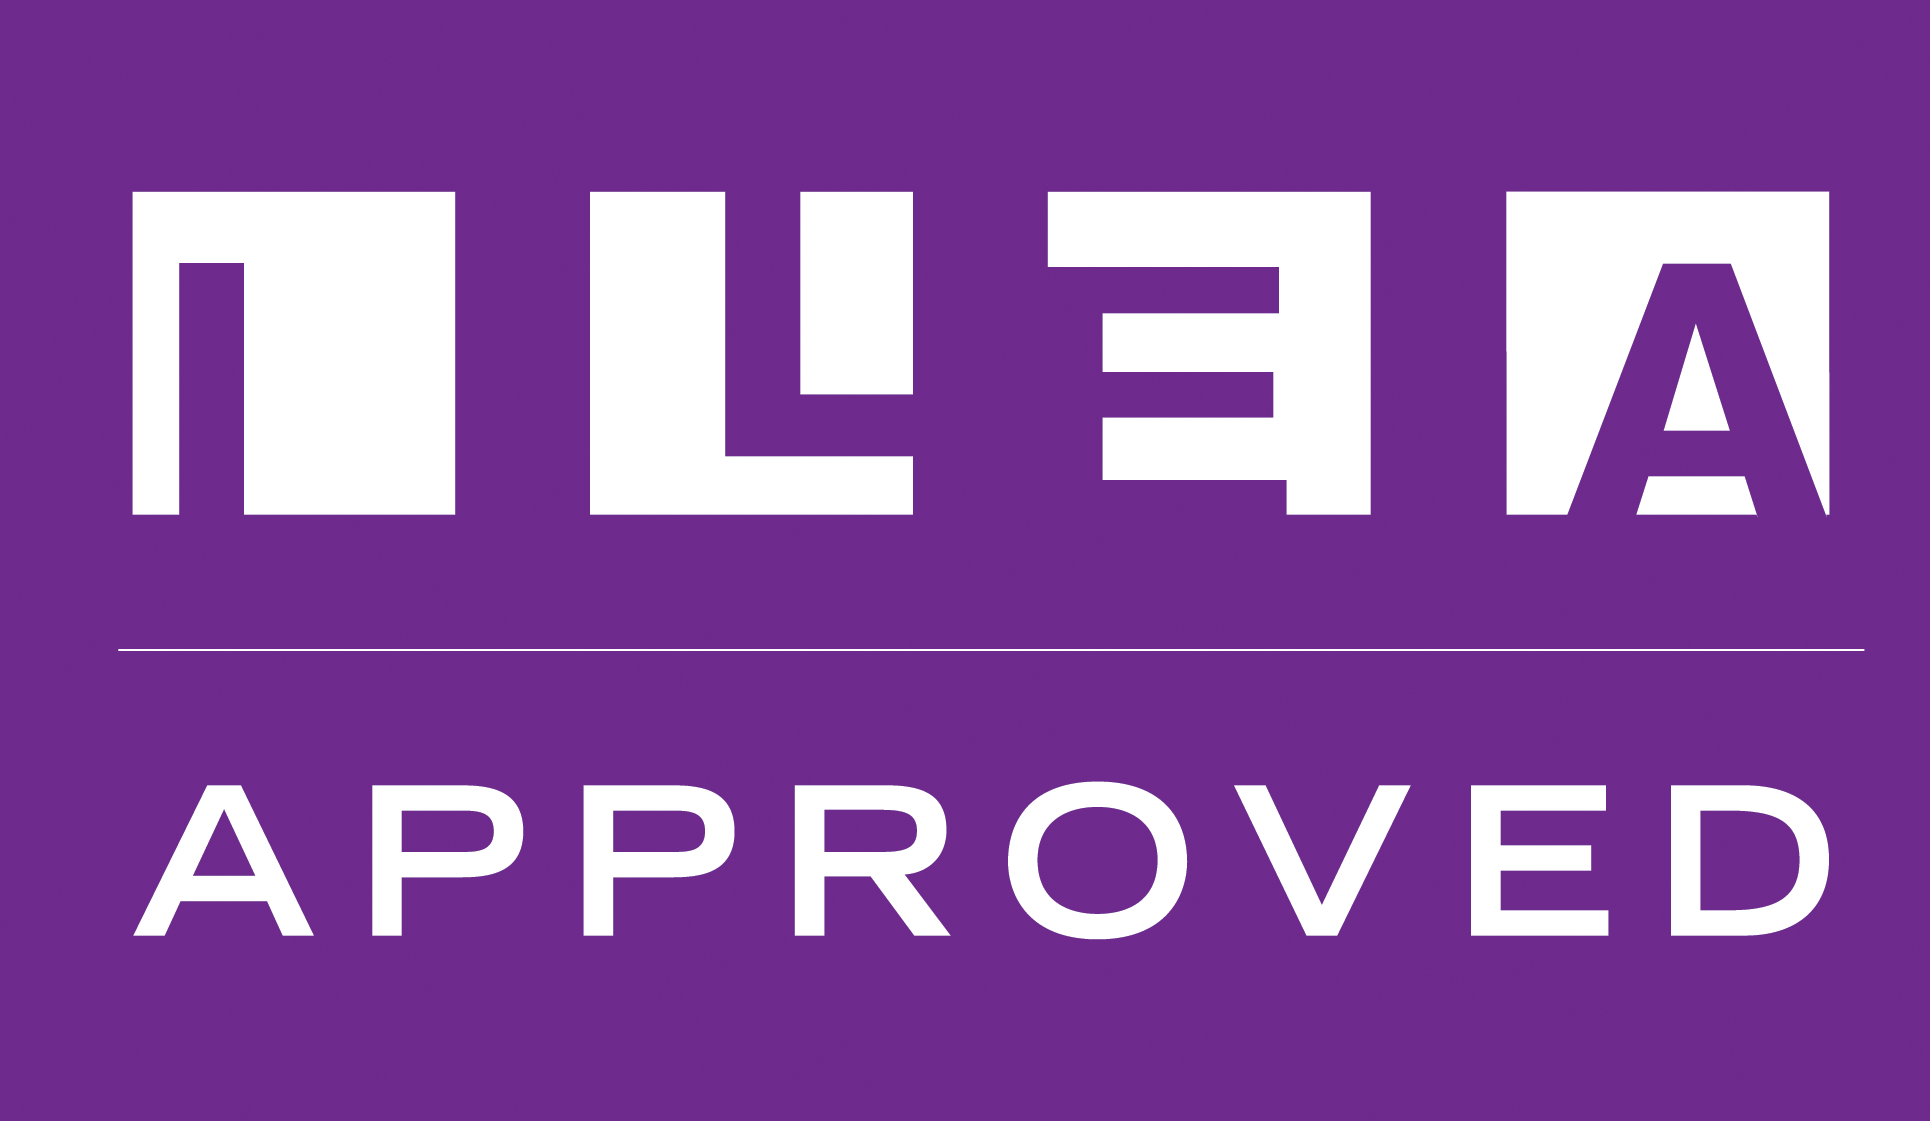 ILEA Approved is the international education standard selected for the  creative event professional and has been developed to recognize specific  content,